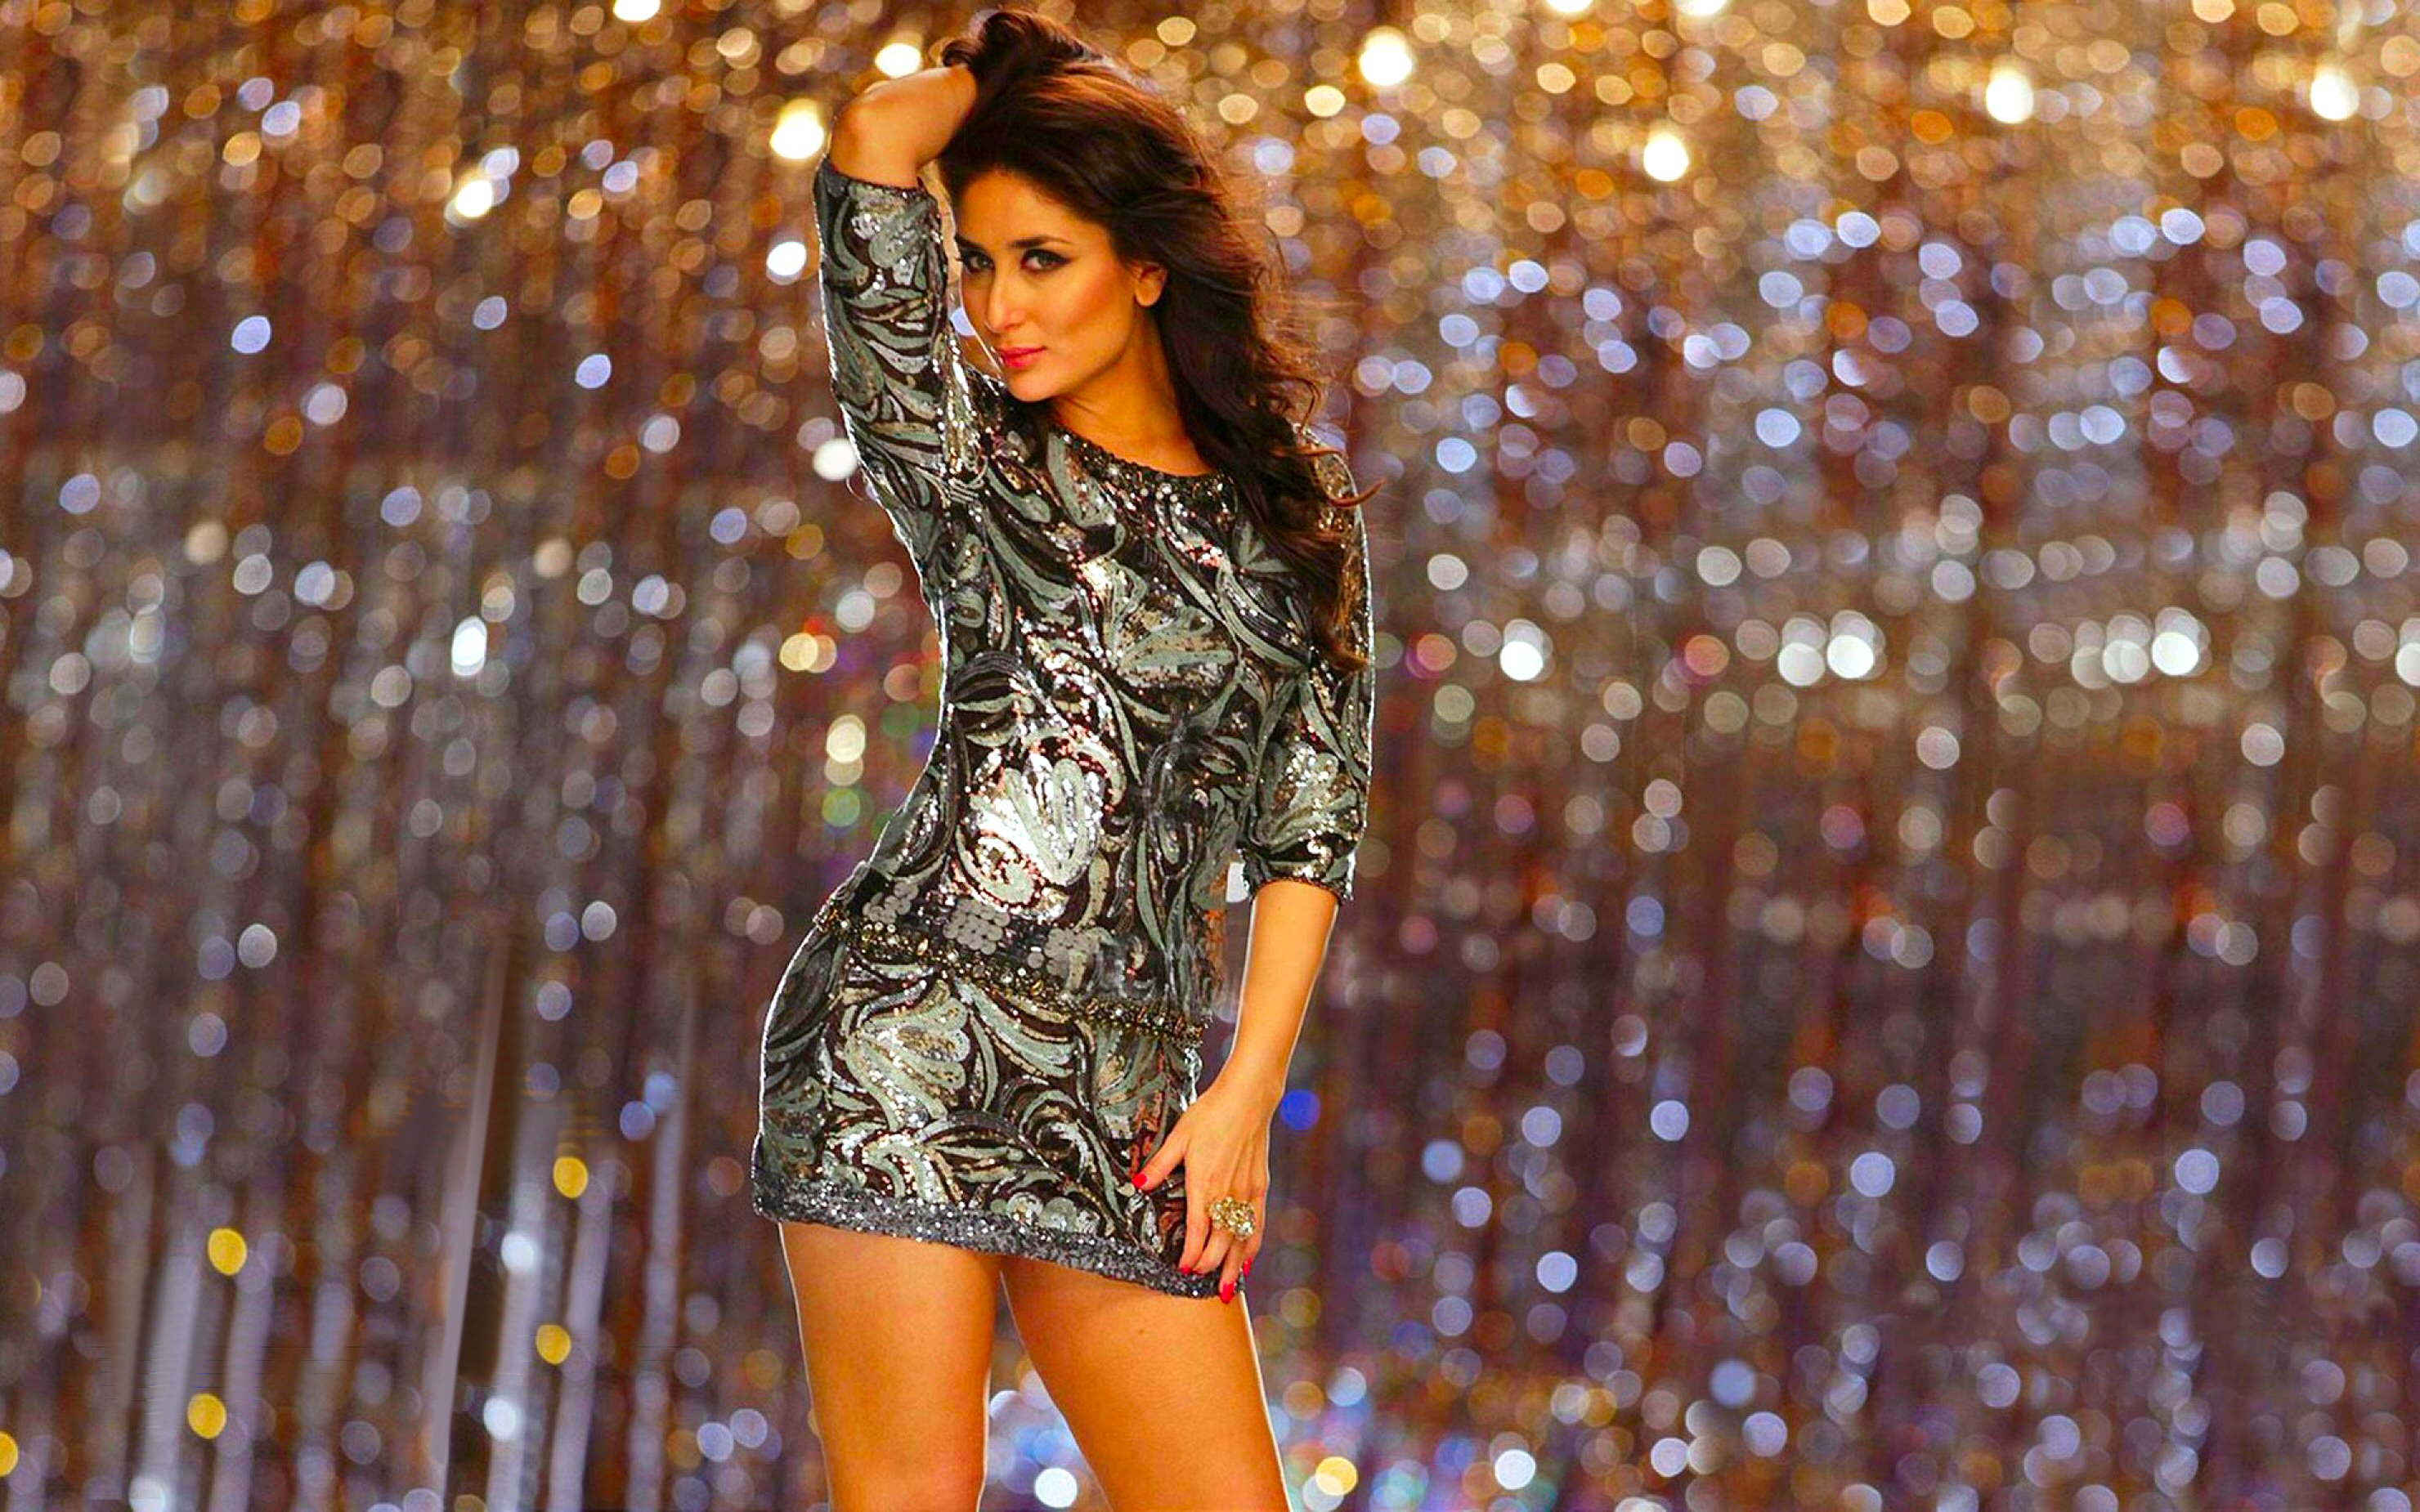 17 Kareena Kapoor Hd Wallpapers  Background Images - Wallpaper Abyss-5096